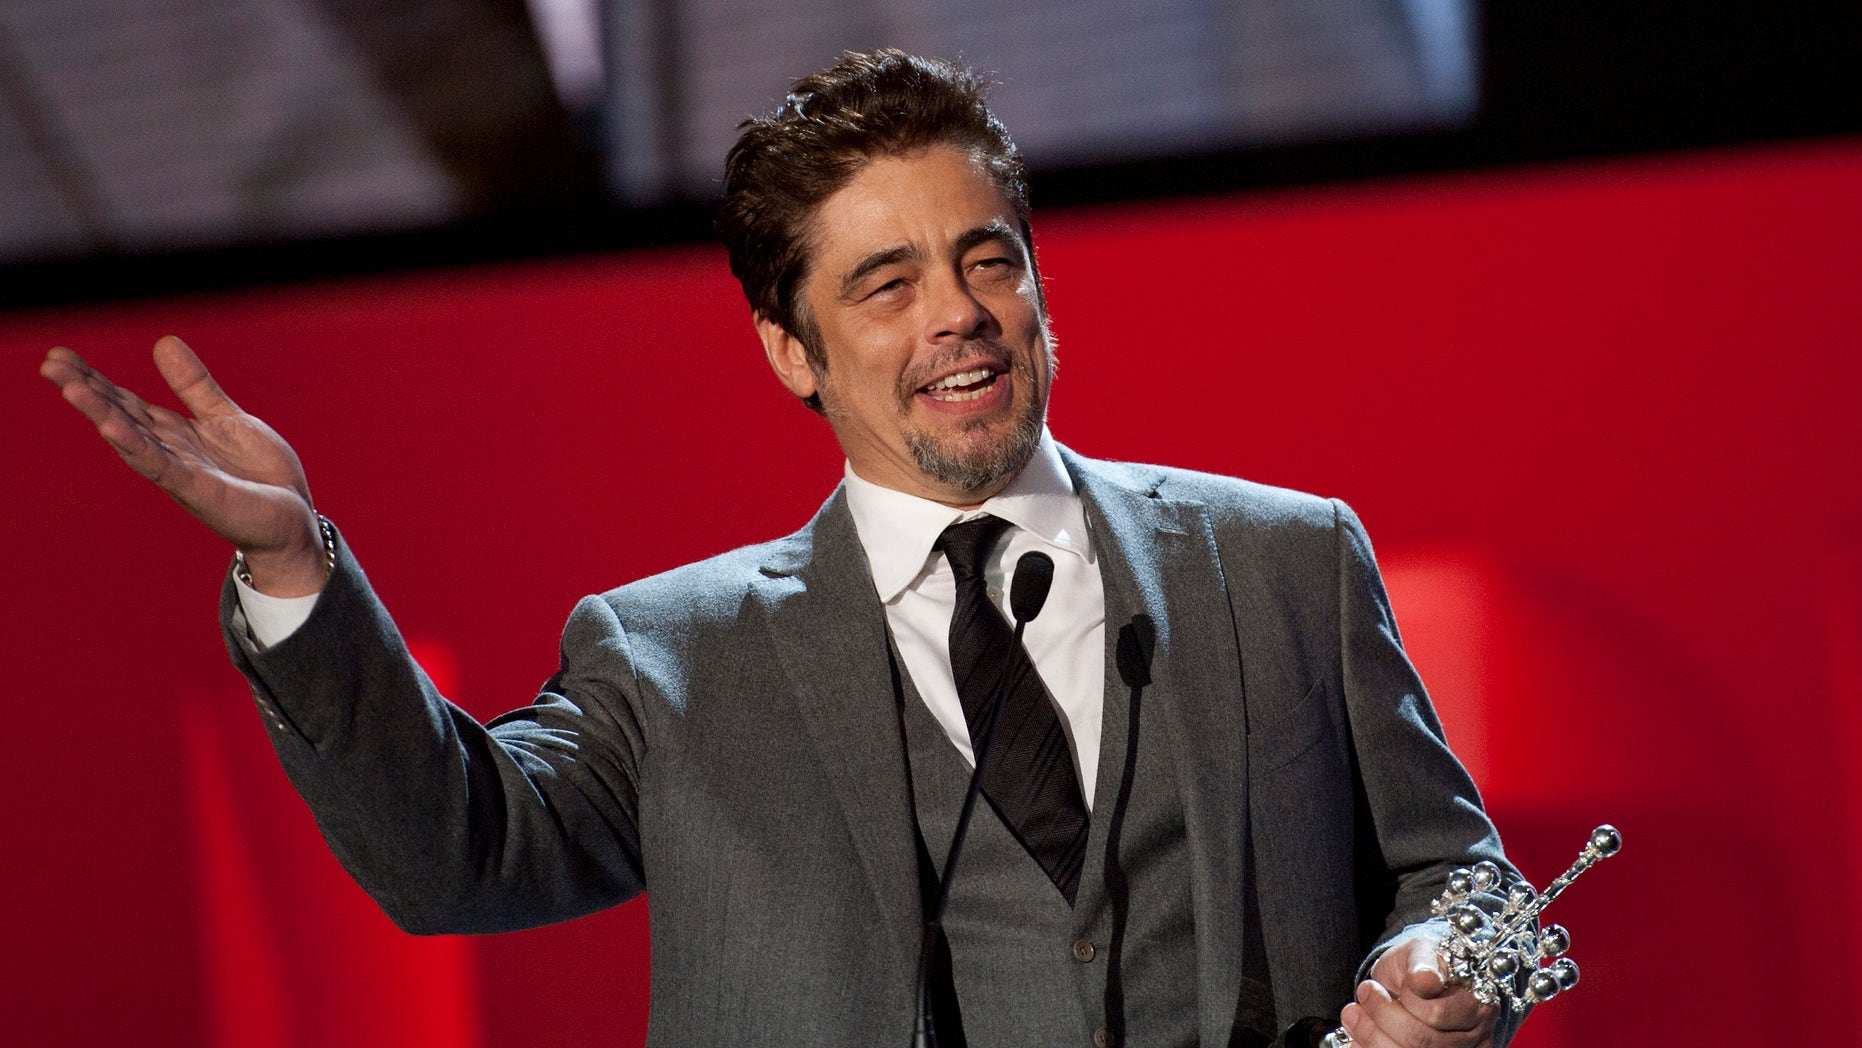 Puerto Rican born actor Benicio del Toro shows his trophy after receiving the Donostia Award for his contribution for the cinema, at the 62nd San Sebastian Film Festival, in San Sebastian, northern Spain, Friday, Sept. 26, 2014. The festival is one of the most prestigious and internationally recognised in Spain. (AP Photo/Alvaro Barrientos)